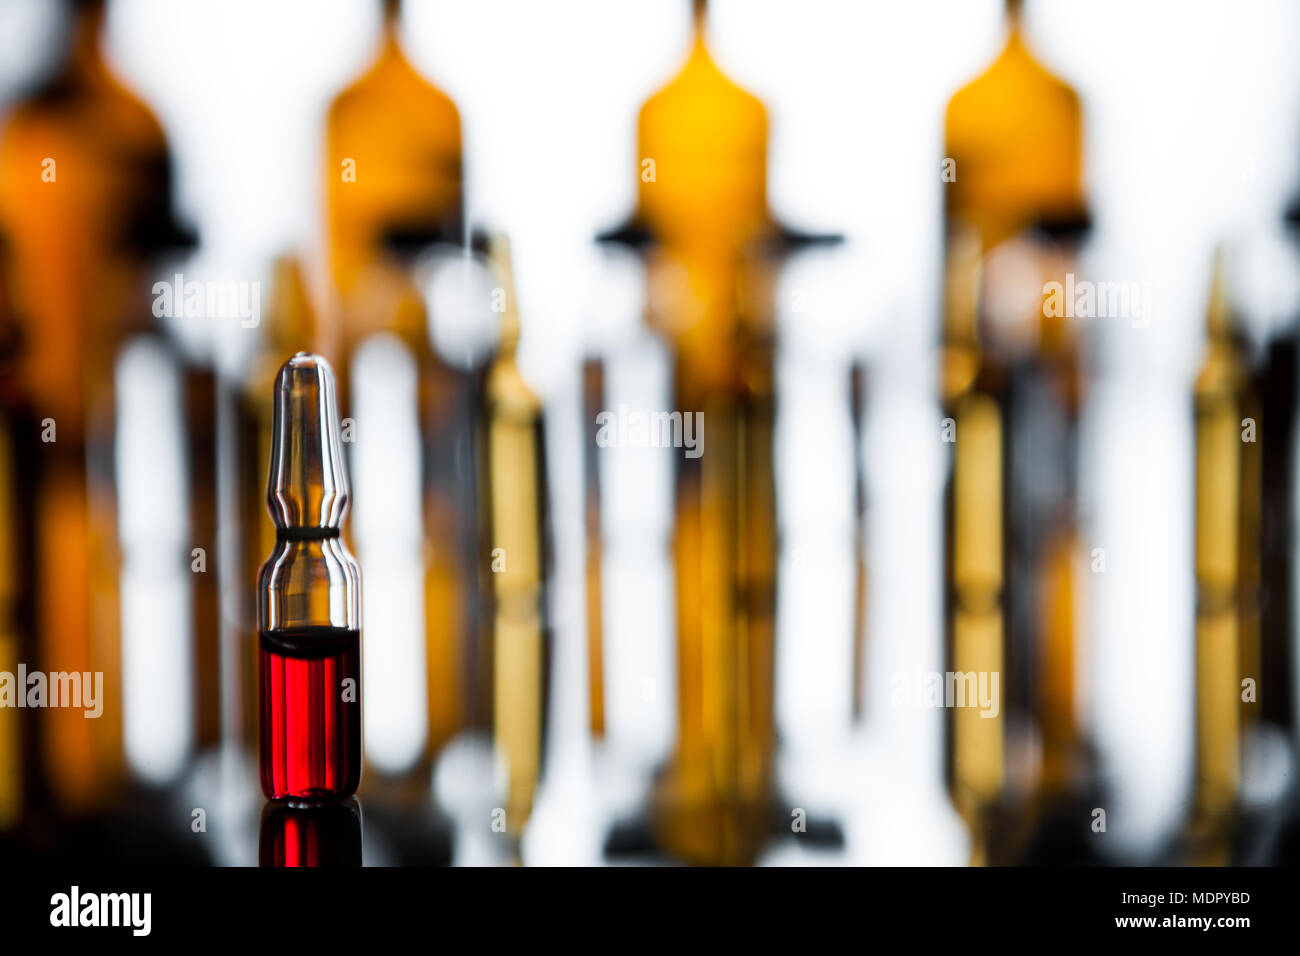 Production of medicines  lot of ampoules on light background  Group